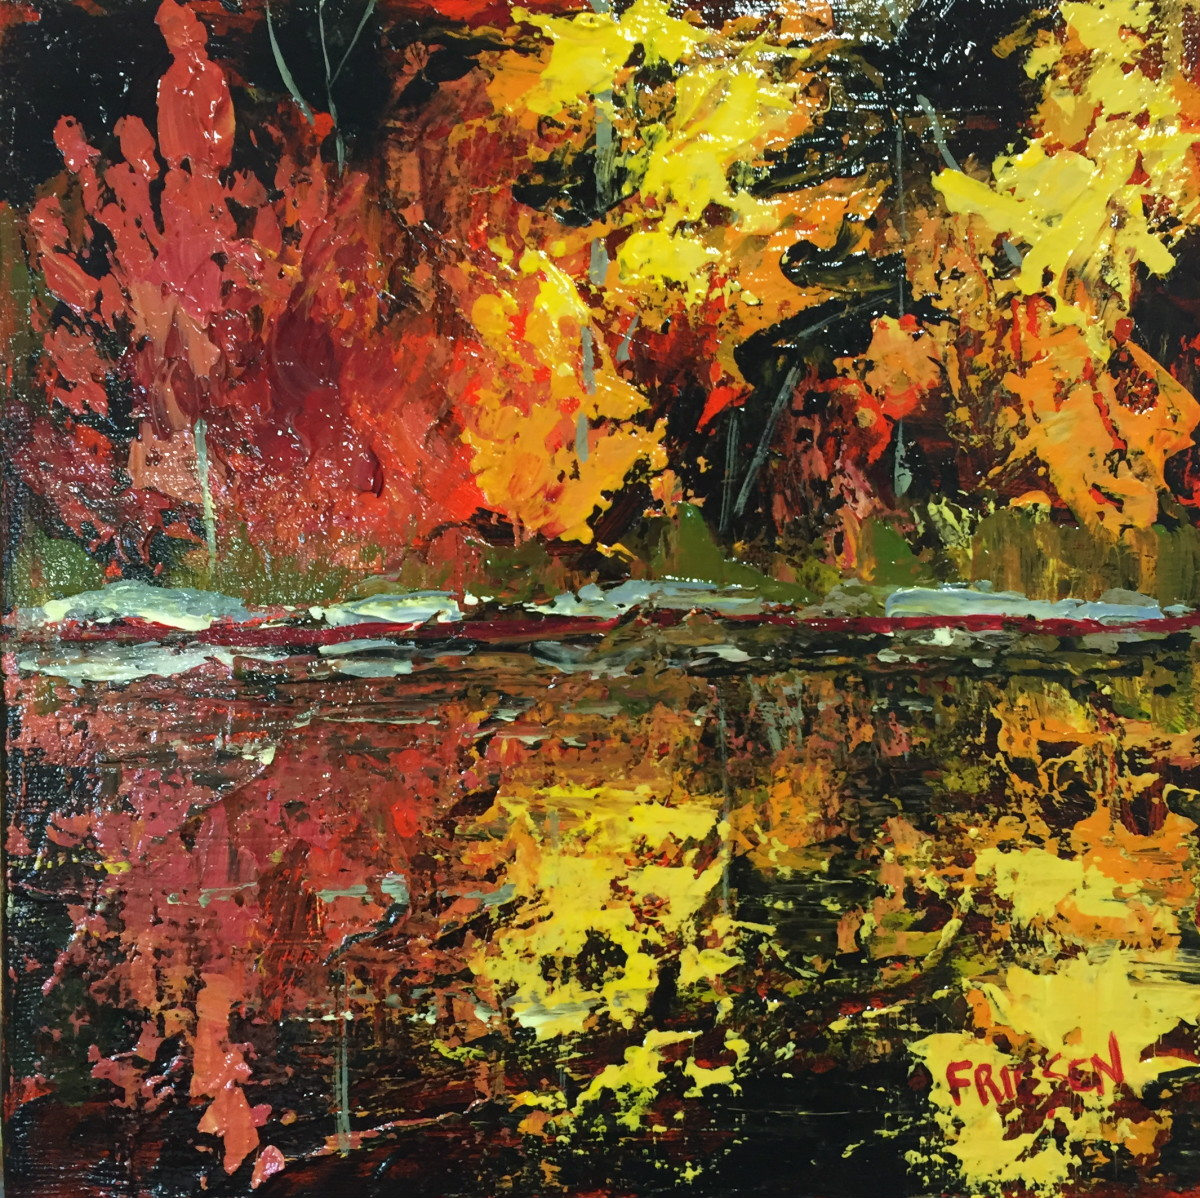 Fire Water by Holly Friesen